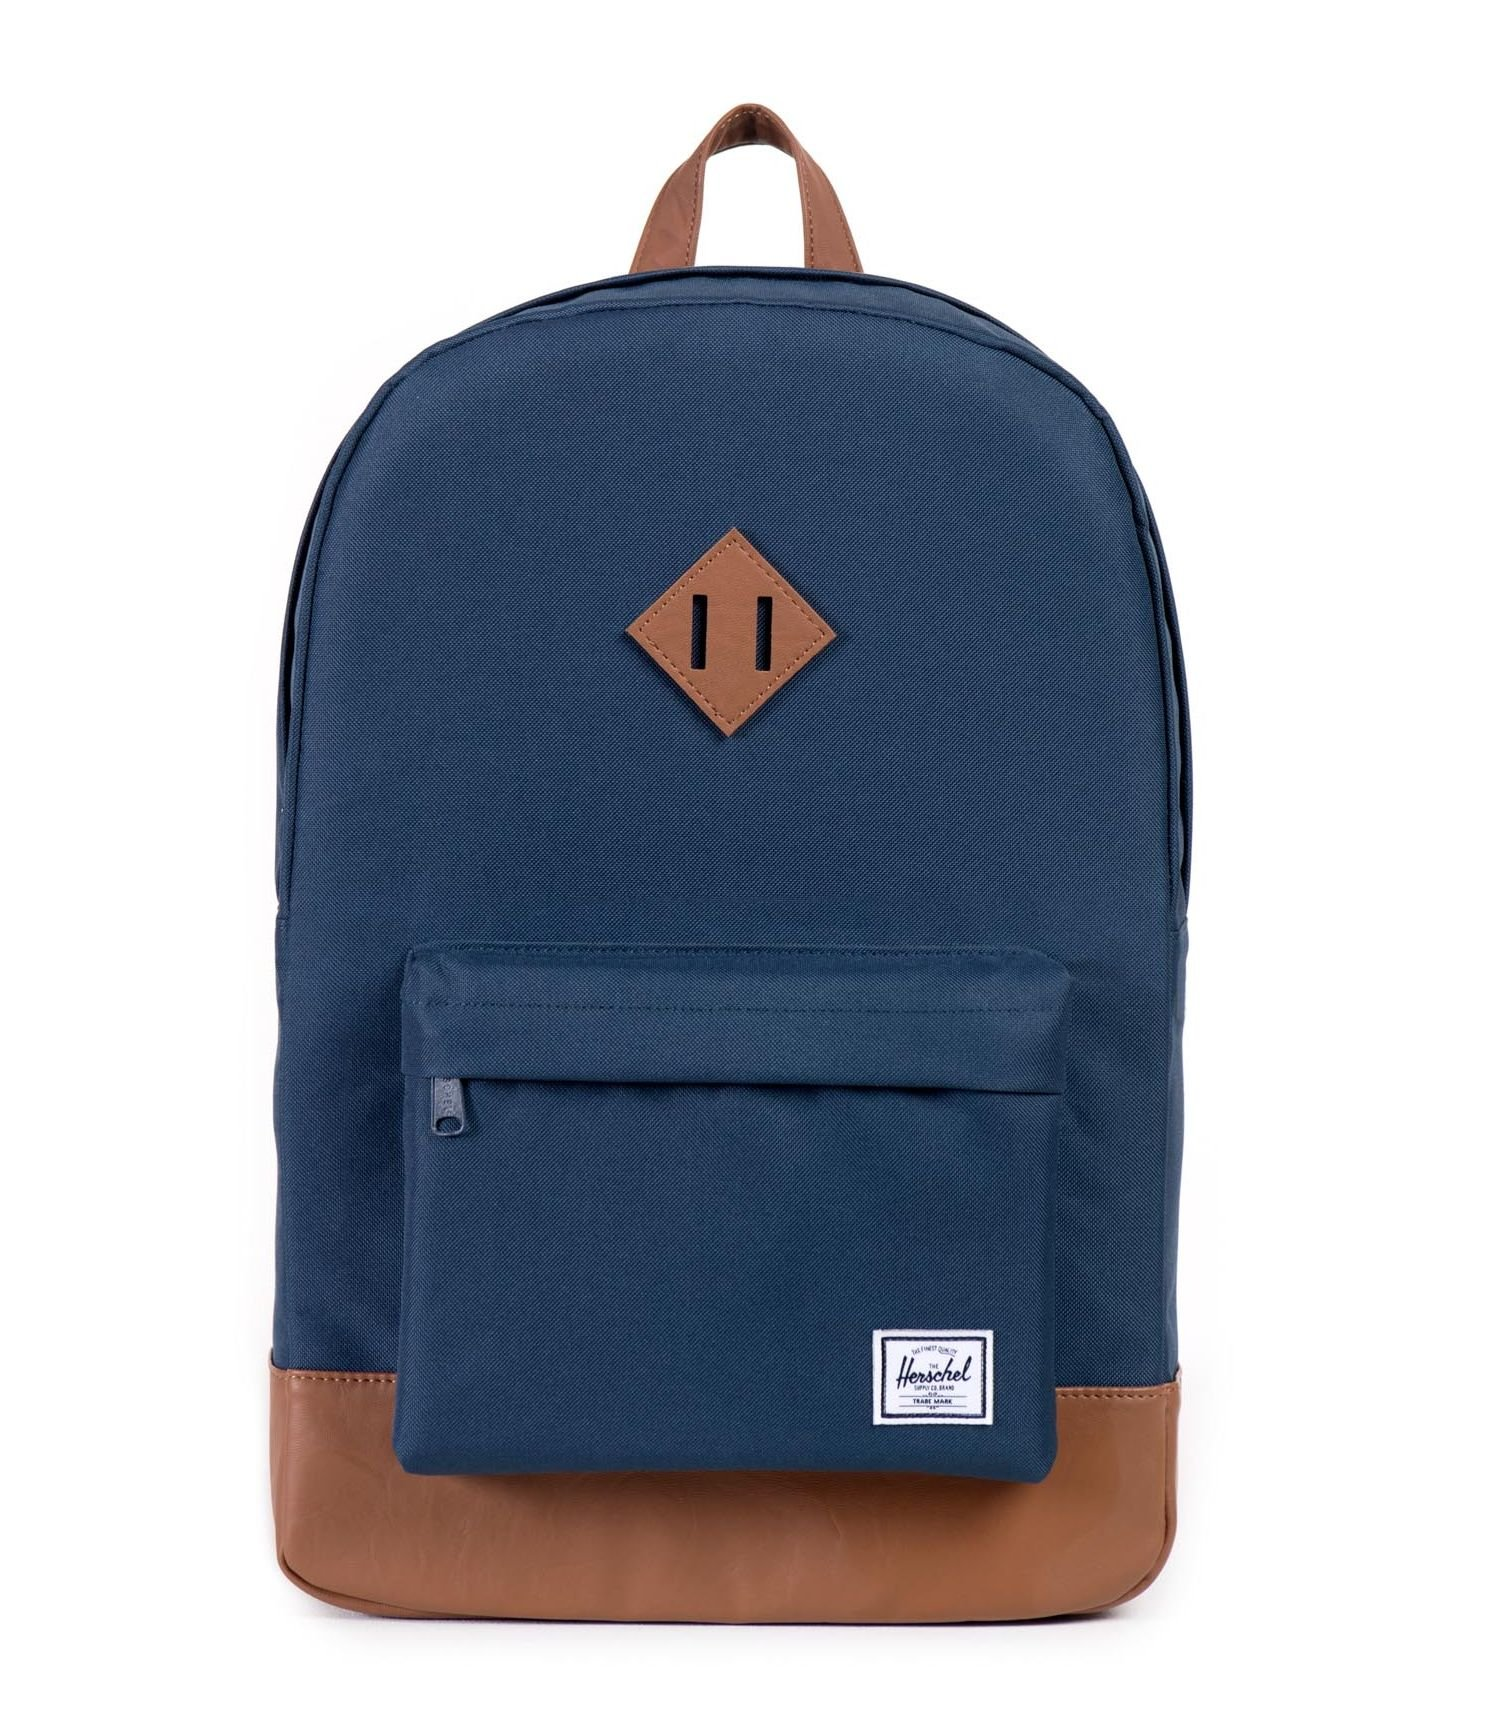 Herschel Supply Co. Heritage, Navy, One Size